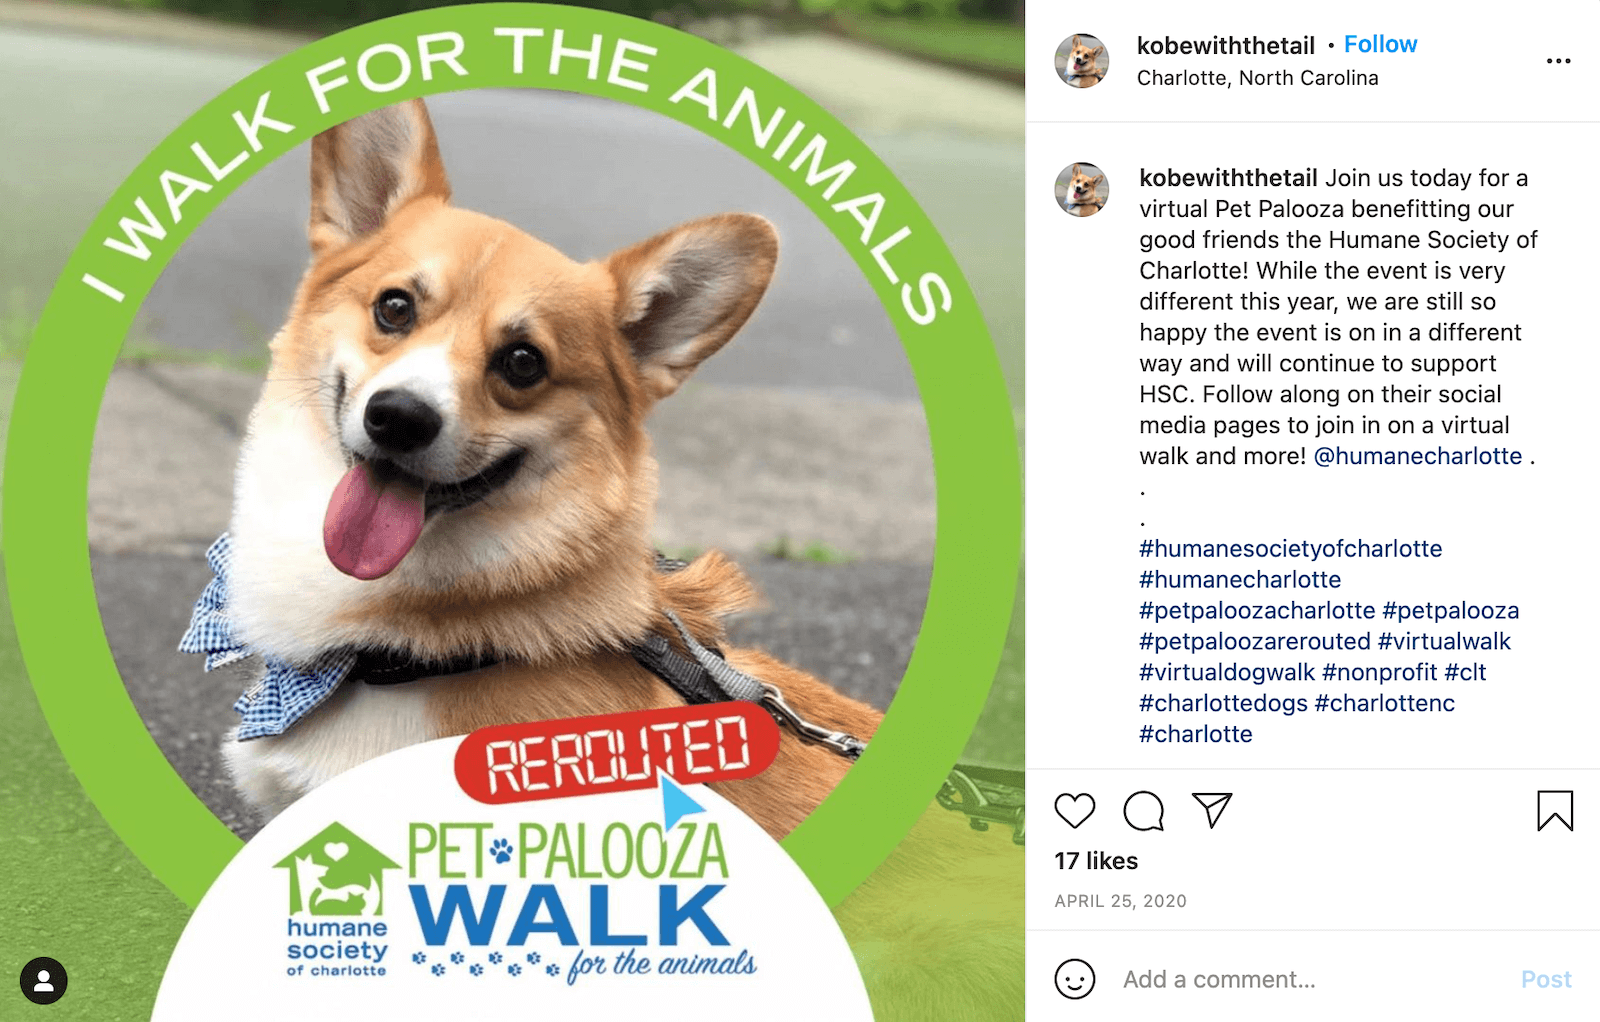 """Instagram post by user @kobewiththetail shows a photo of a smiling corgi with blue-and-white gingham bow tie within a social media frame for Pet Palooza Rerouted that says """"I walk for the animals"""". The caption reads: Join us today for a virtual Pet Palooza benefitting our good friends the Humane Society of Charlotte! While the event is very different this year, we are still so happy the event is on in a different way and will continue to support HSC. Follow along on their social media pages to join in on a virtual walk and more! @humanecharlotte . . . #humanesocietyofcharlotte #humanecharlotte #petpaloozacharlotte #petpalooza #petpaloozarerouted #virtualwalk #virtualdogwalk #nonprofit #clt #charlottedogs #charlottenc #charlotte"""